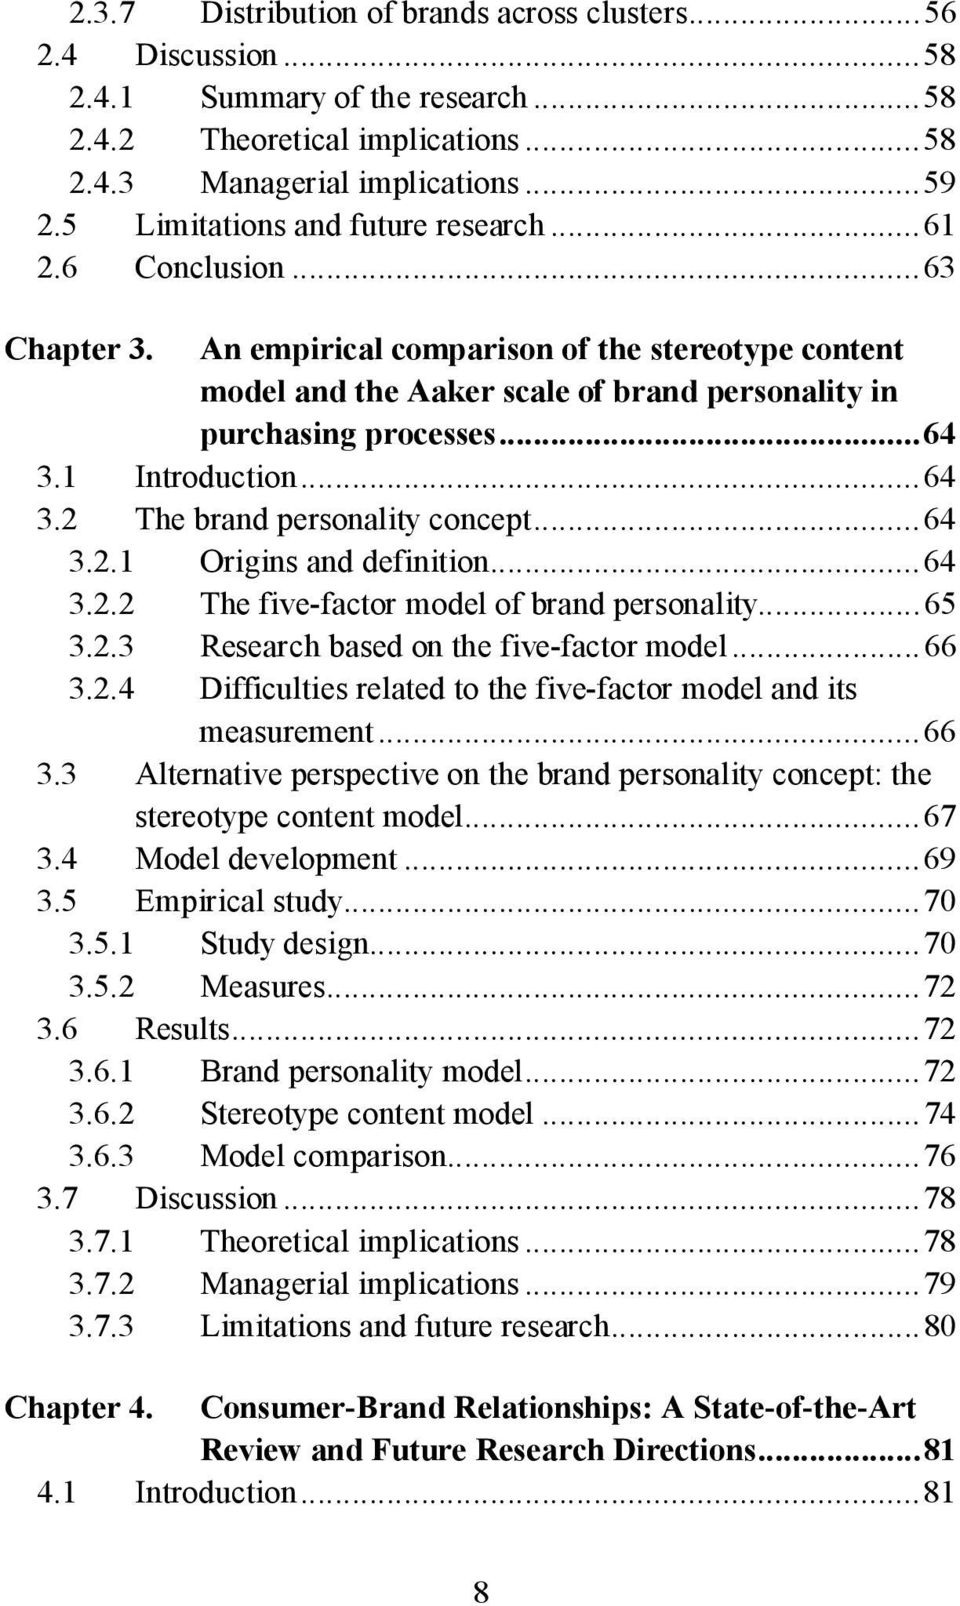 1 Introduction...64 3.2 The brand personality concept...64 3.2.1 Origins and definition...64 3.2.2 The five-factor model of brand personality...65 3.2.3 Research based on the five-factor model...66 3.